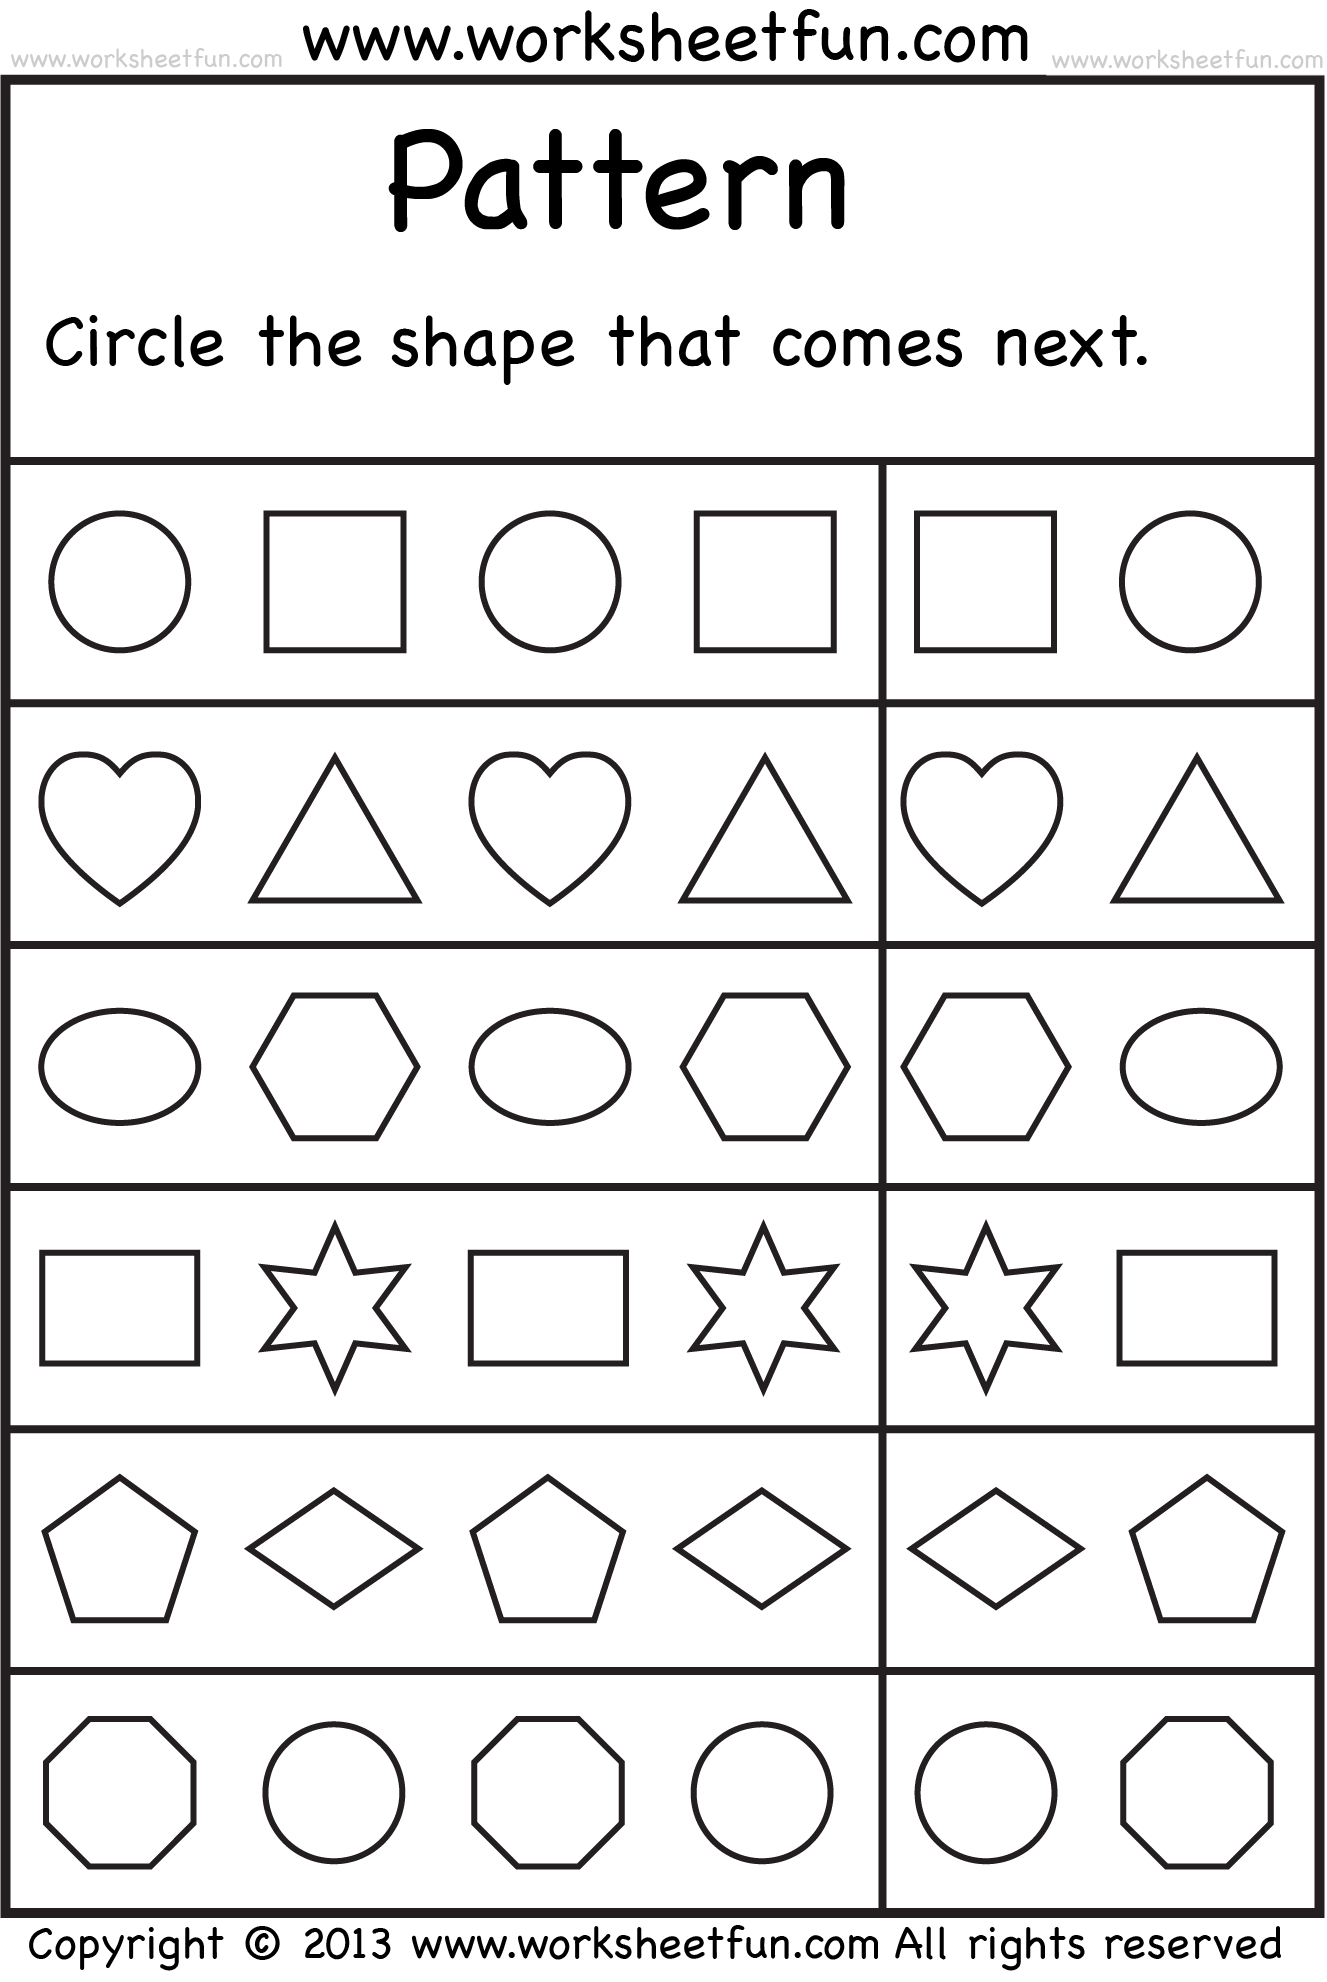 Weirdmailus  Wonderful  Images About School Worksheets On Pinterest  Number Words  With Exquisite  Images About School Worksheets On Pinterest  Number Words Alphabet Worksheets And Free Printable Kindergarten Worksheets With Beautiful All About Me Worksheets For Kids Also Fraction Of Numbers Worksheet In Addition Free Printable Worksheets For Math And Demonstrative Pronouns Worksheets For Grade  As Well As Worksheets For Kids Pdf Additionally Mrs Nerg Worksheet From Pinterestcom With Weirdmailus  Exquisite  Images About School Worksheets On Pinterest  Number Words  With Beautiful  Images About School Worksheets On Pinterest  Number Words Alphabet Worksheets And Free Printable Kindergarten Worksheets And Wonderful All About Me Worksheets For Kids Also Fraction Of Numbers Worksheet In Addition Free Printable Worksheets For Math From Pinterestcom